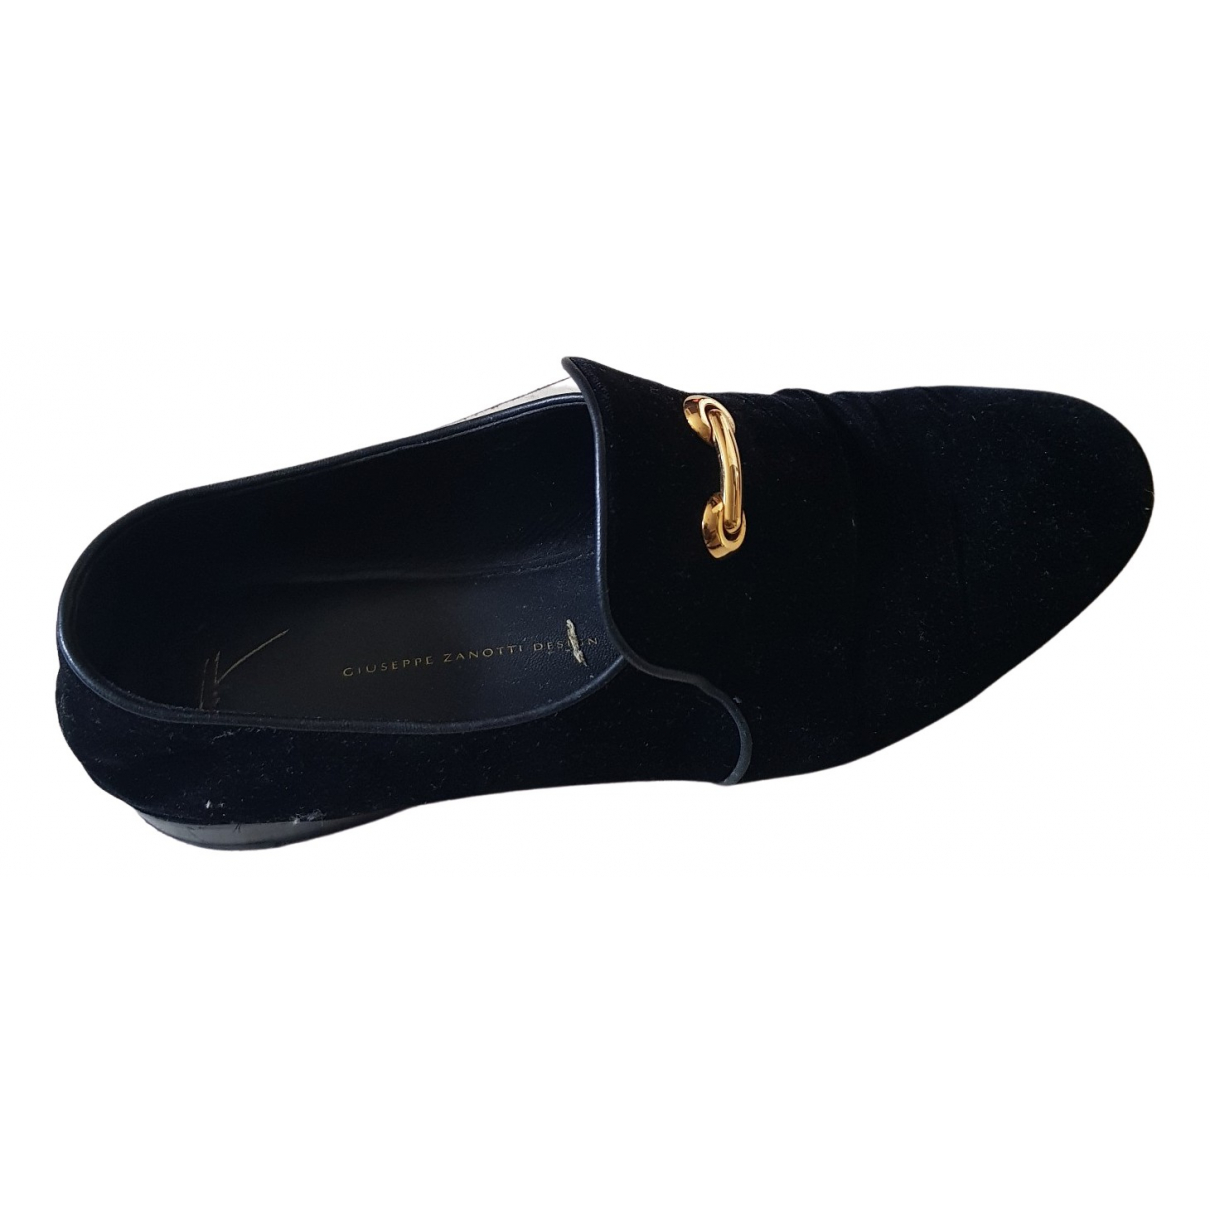 Giuseppe Zanotti \N Black Velvet Flats for Men 45 EU